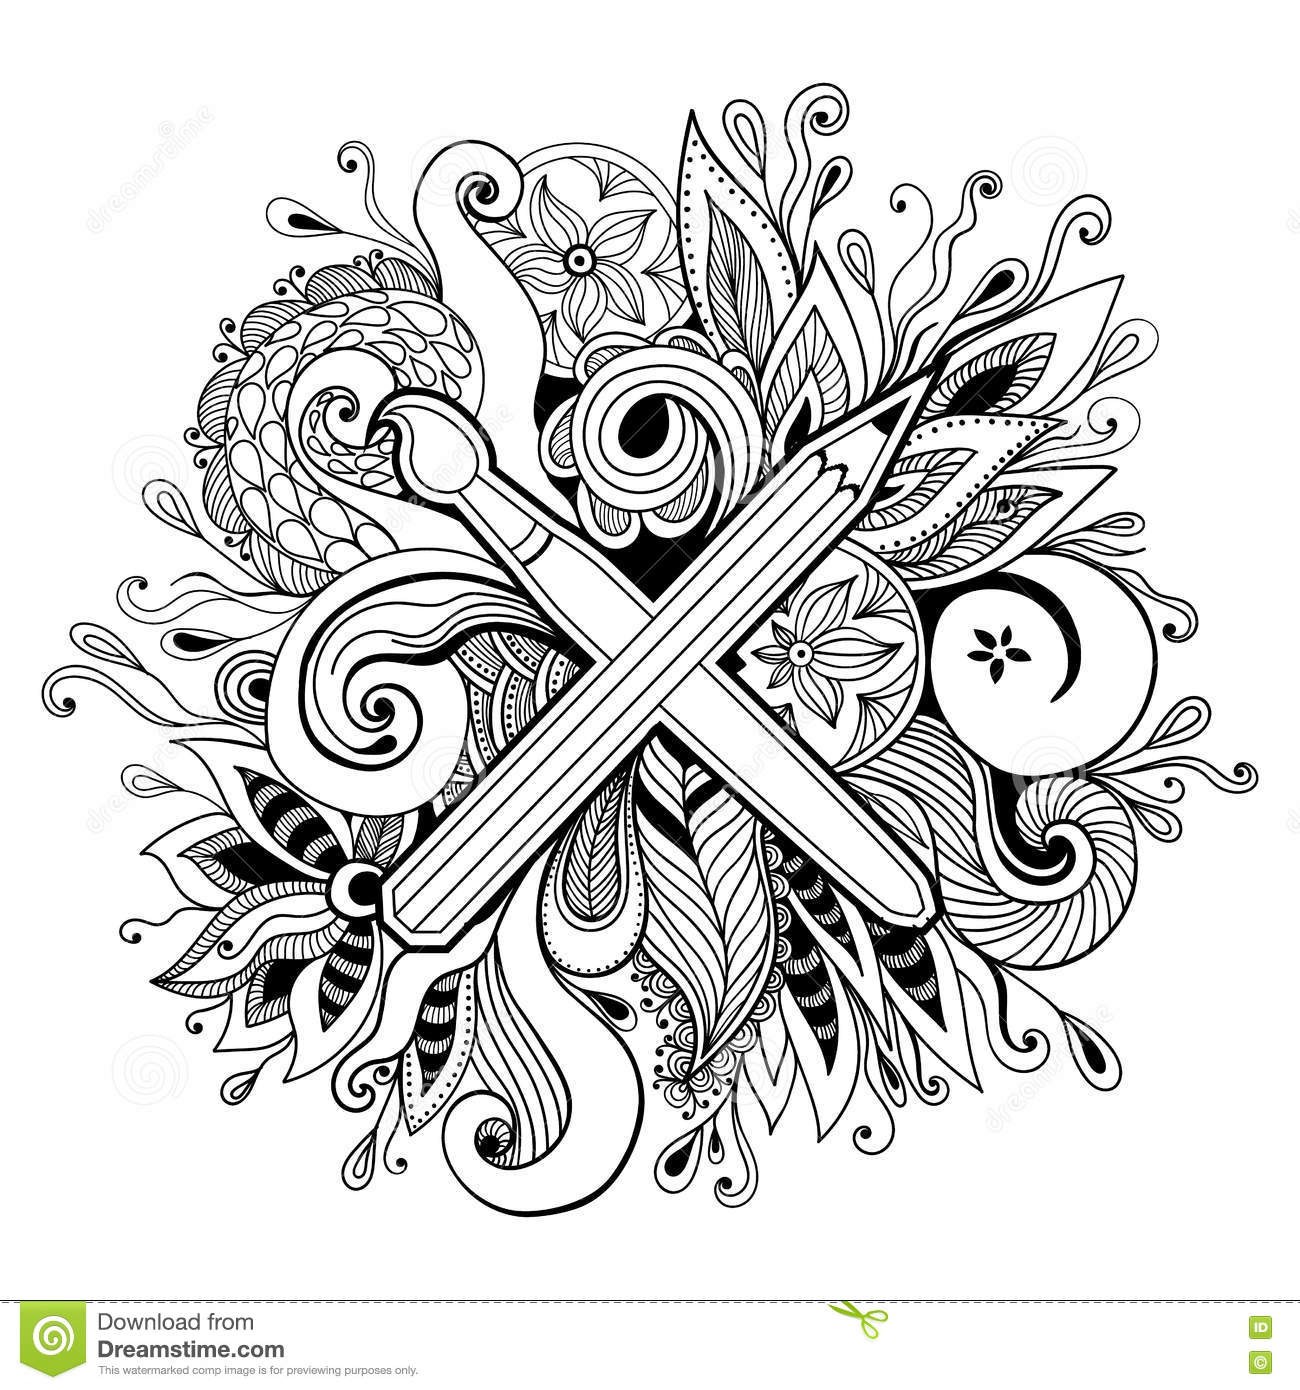 Christmas Kaleidoscope Coloring Pages With Black And White Hand Drawn Abstract Vector Illustration